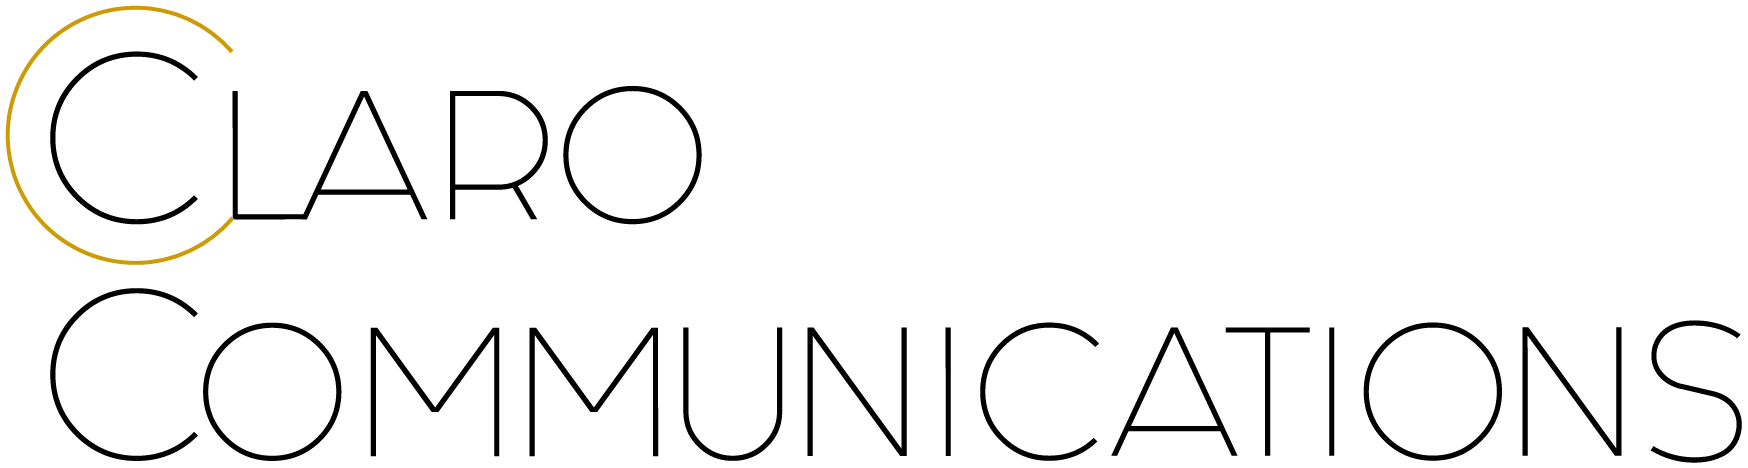 Freelance Copywriter Claro Communications